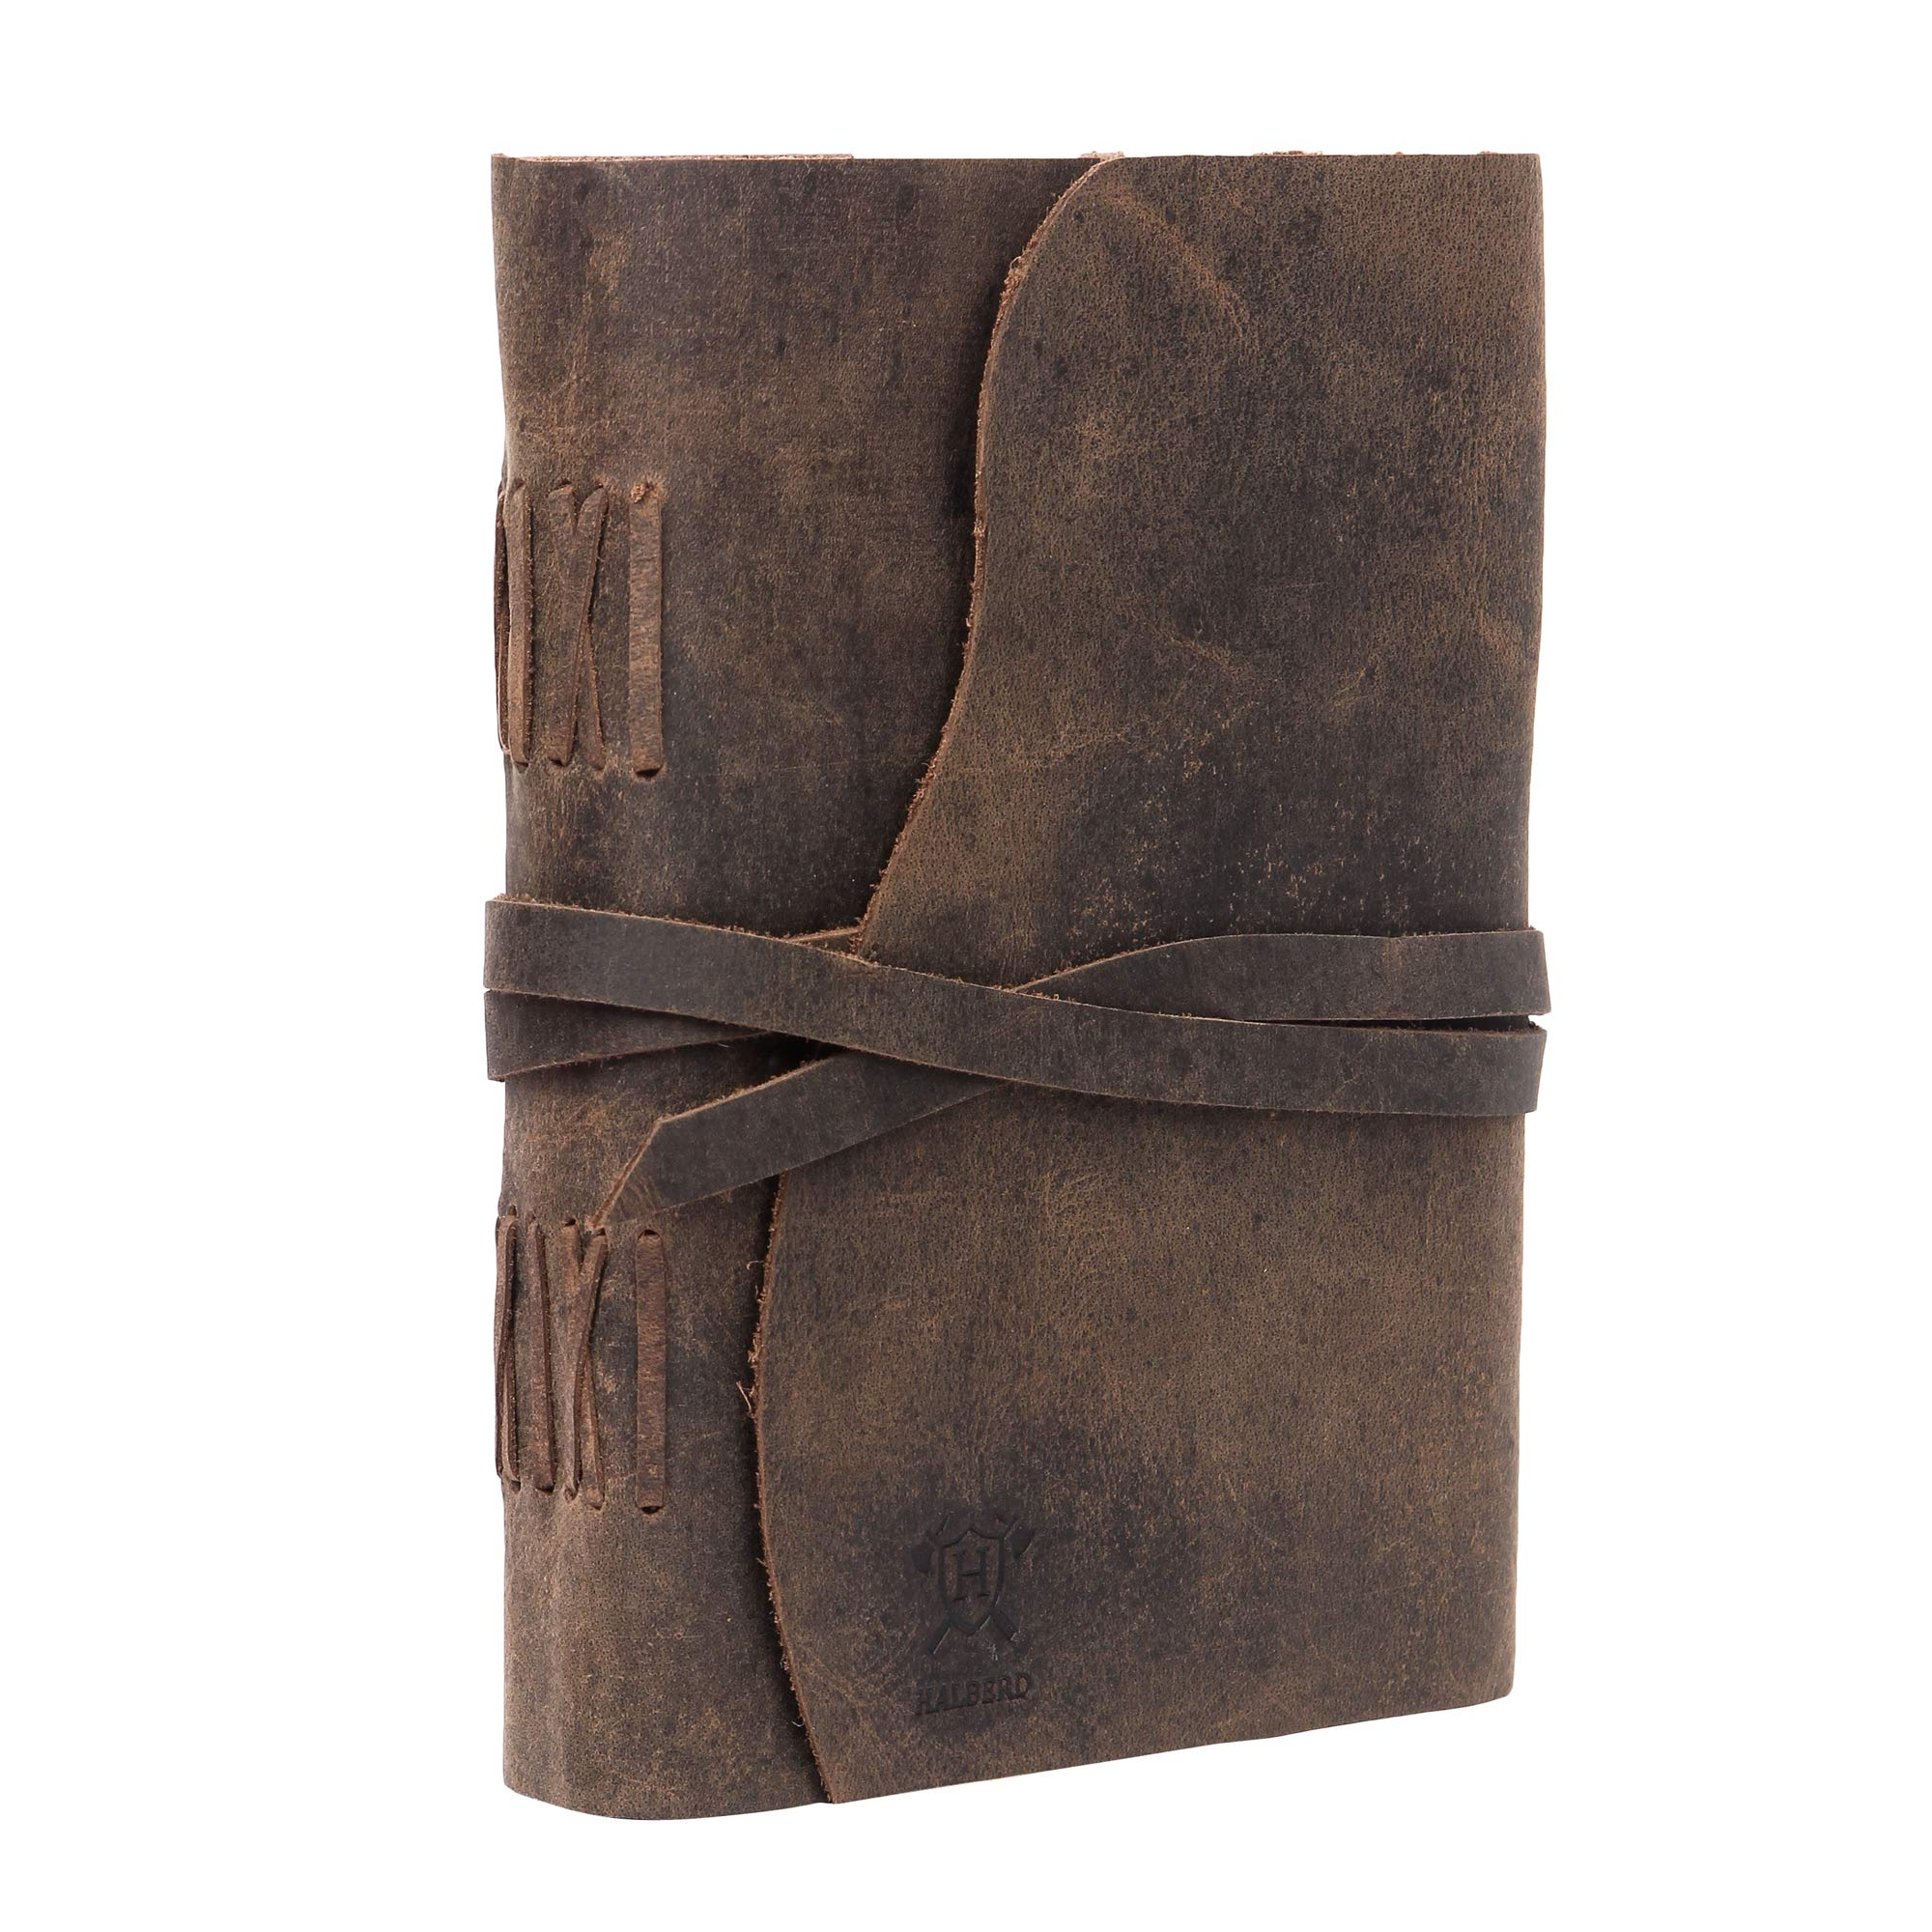 RUSTIC LEATHER JOURNAL Writing Notebook - Antique Handmade Leather Bound Daily Notepad For Men & Women Kraft Paper, Best Gift for Art Sketchbook, Travel Diary & Notebooks to Write